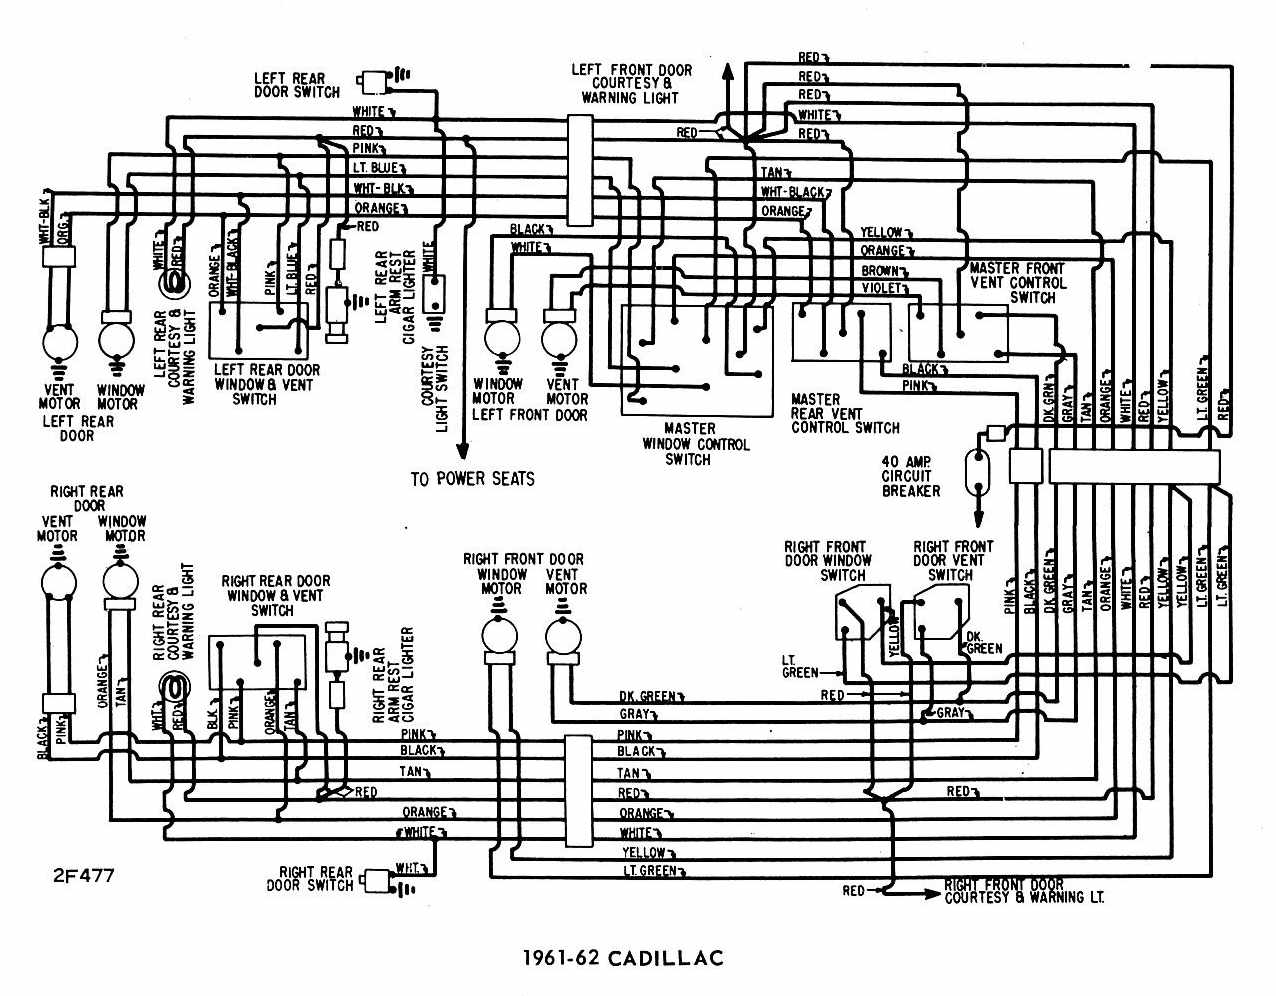 cadillac car manuals wiring diagrams pdf amp fault codes 1967 cadillac eldorado wiring diagram #1